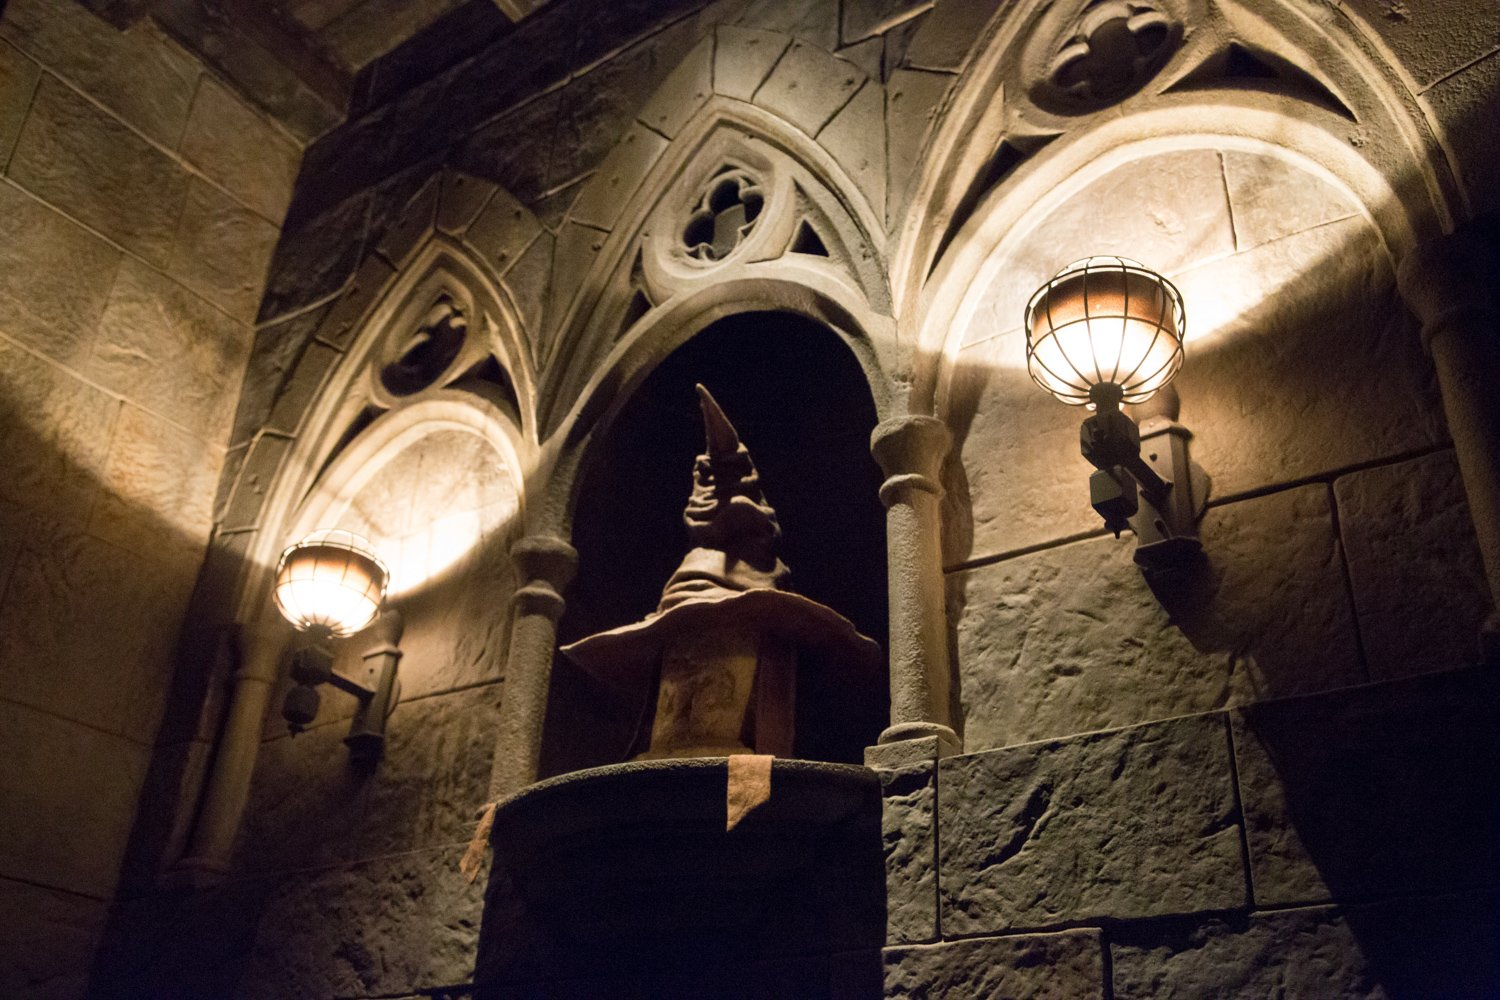 universal_studios_hollywood_harry_potter_world_review-6